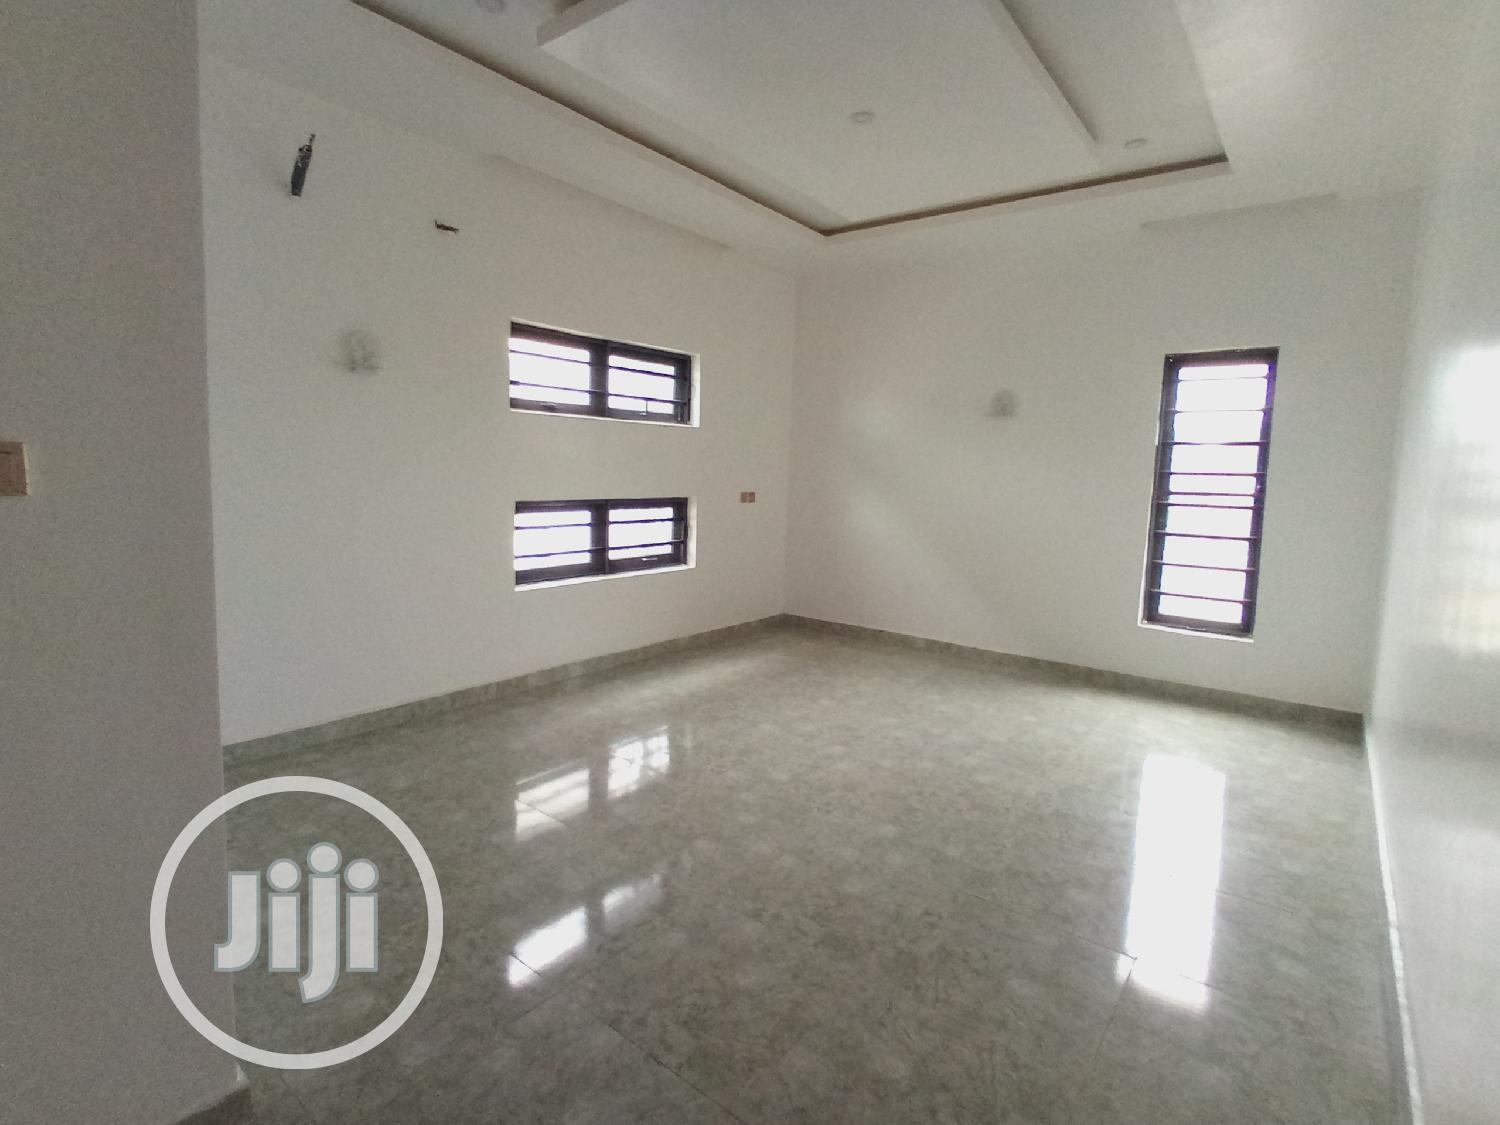 5bedroom Fully Detached Duplex With Swimming Pool And Rooftop Bar | Houses & Apartments For Sale for sale in Lekki Phase 2, Lagos State, Nigeria